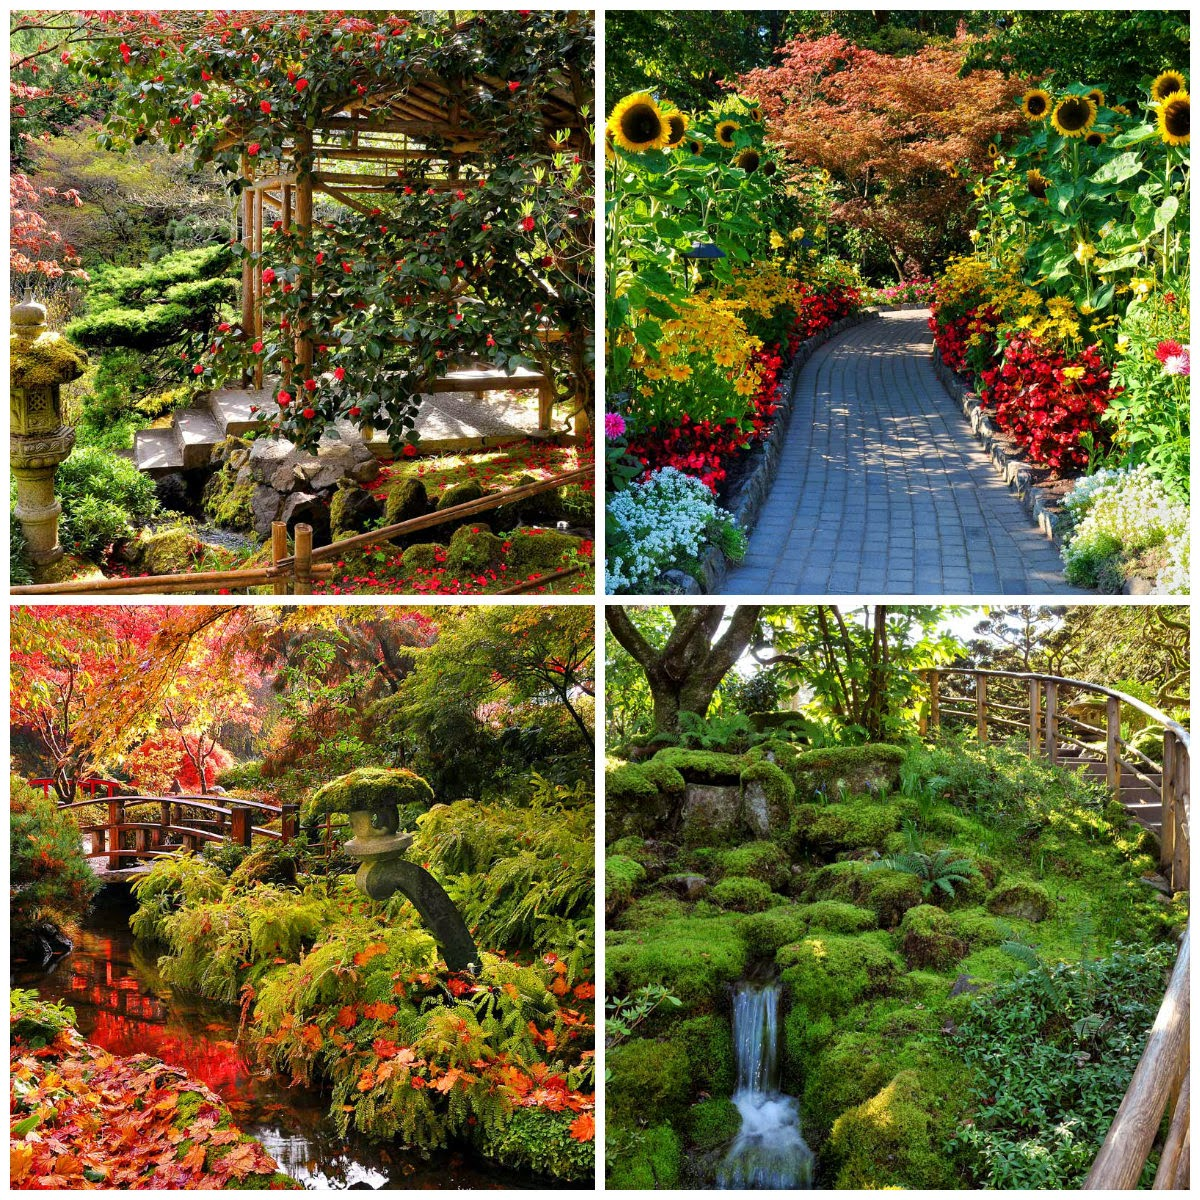 Butchart Gardens Spring, Summer, Fall, and Winter Collage